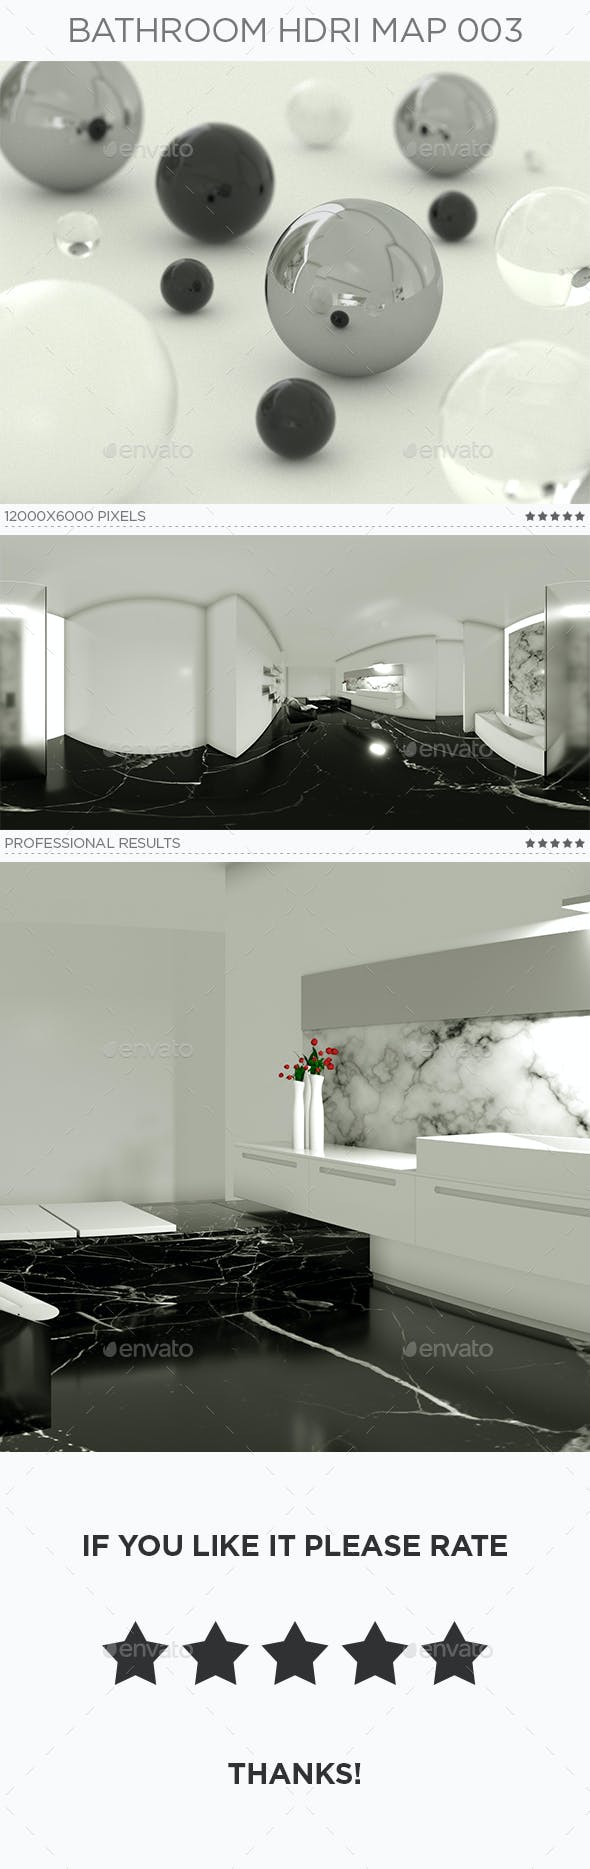 Bathroom HDRi Map 003 - 3DOcean Item for Sale